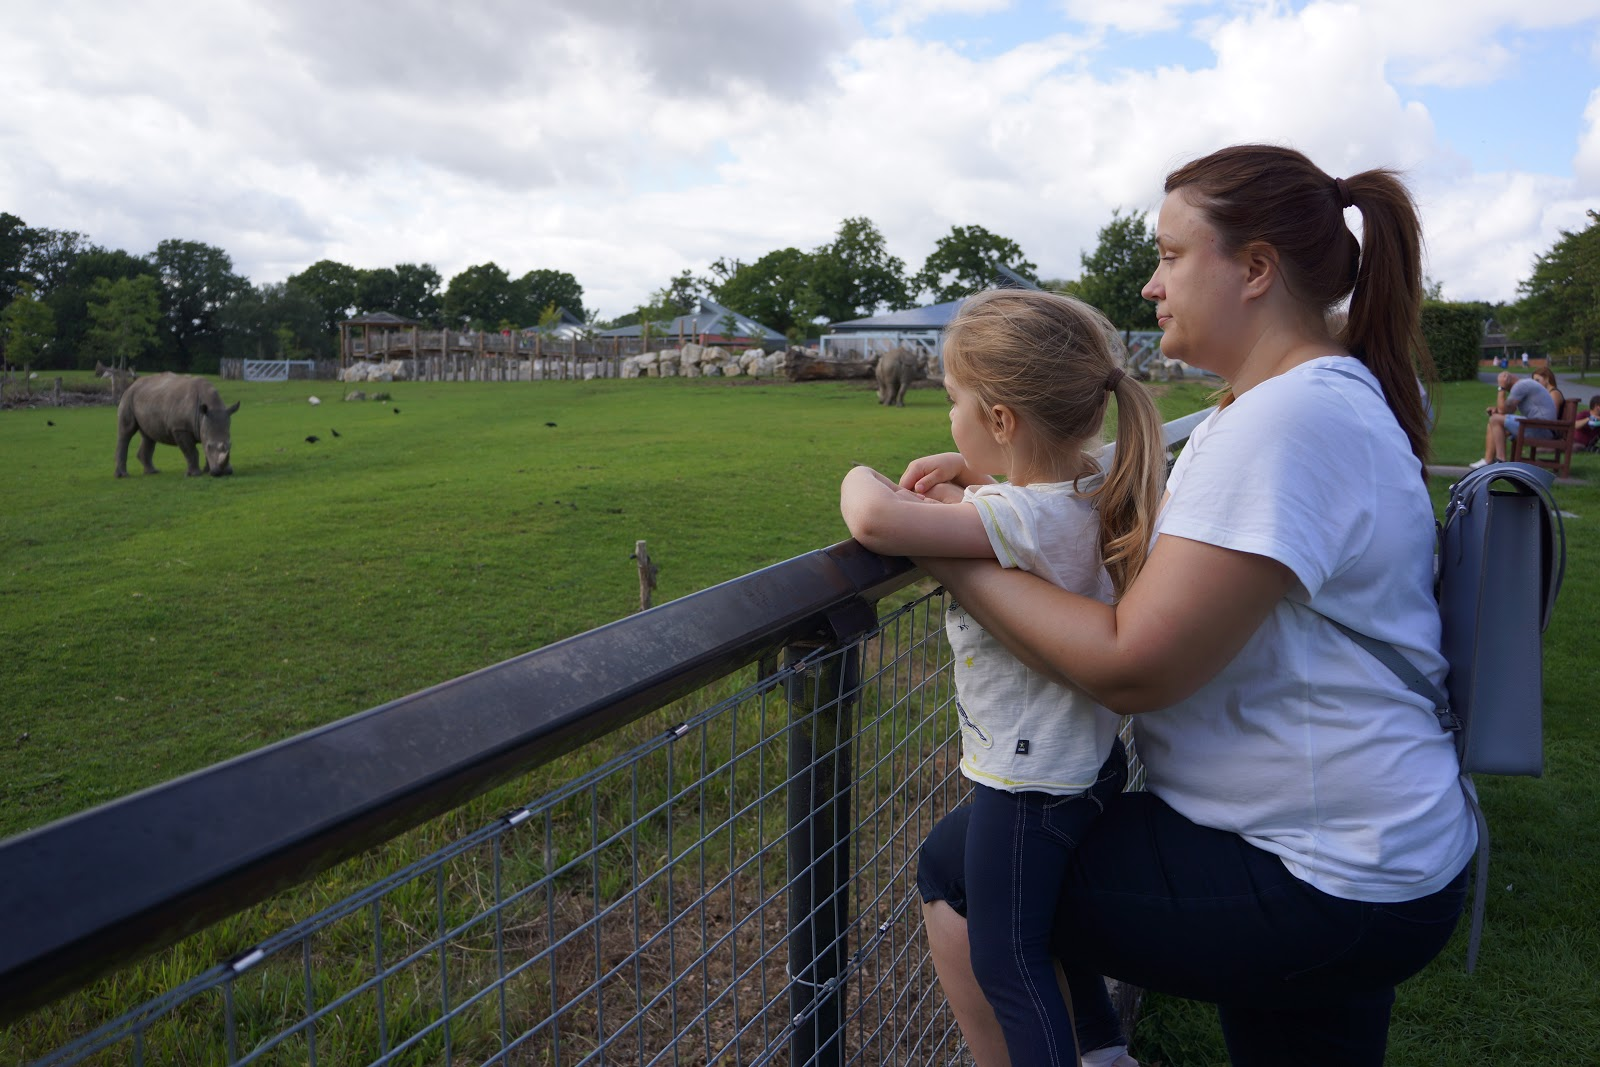 mum an daughter watching rhinos at a zoo